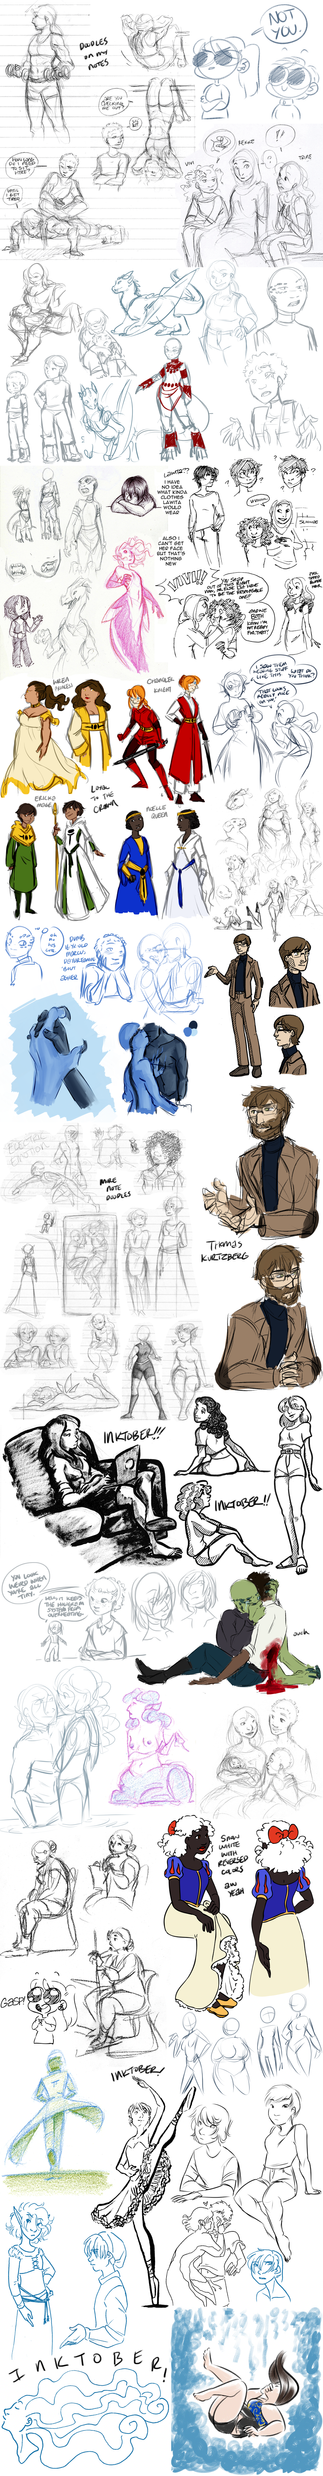 Sketchdump 81 by ratopiangirl